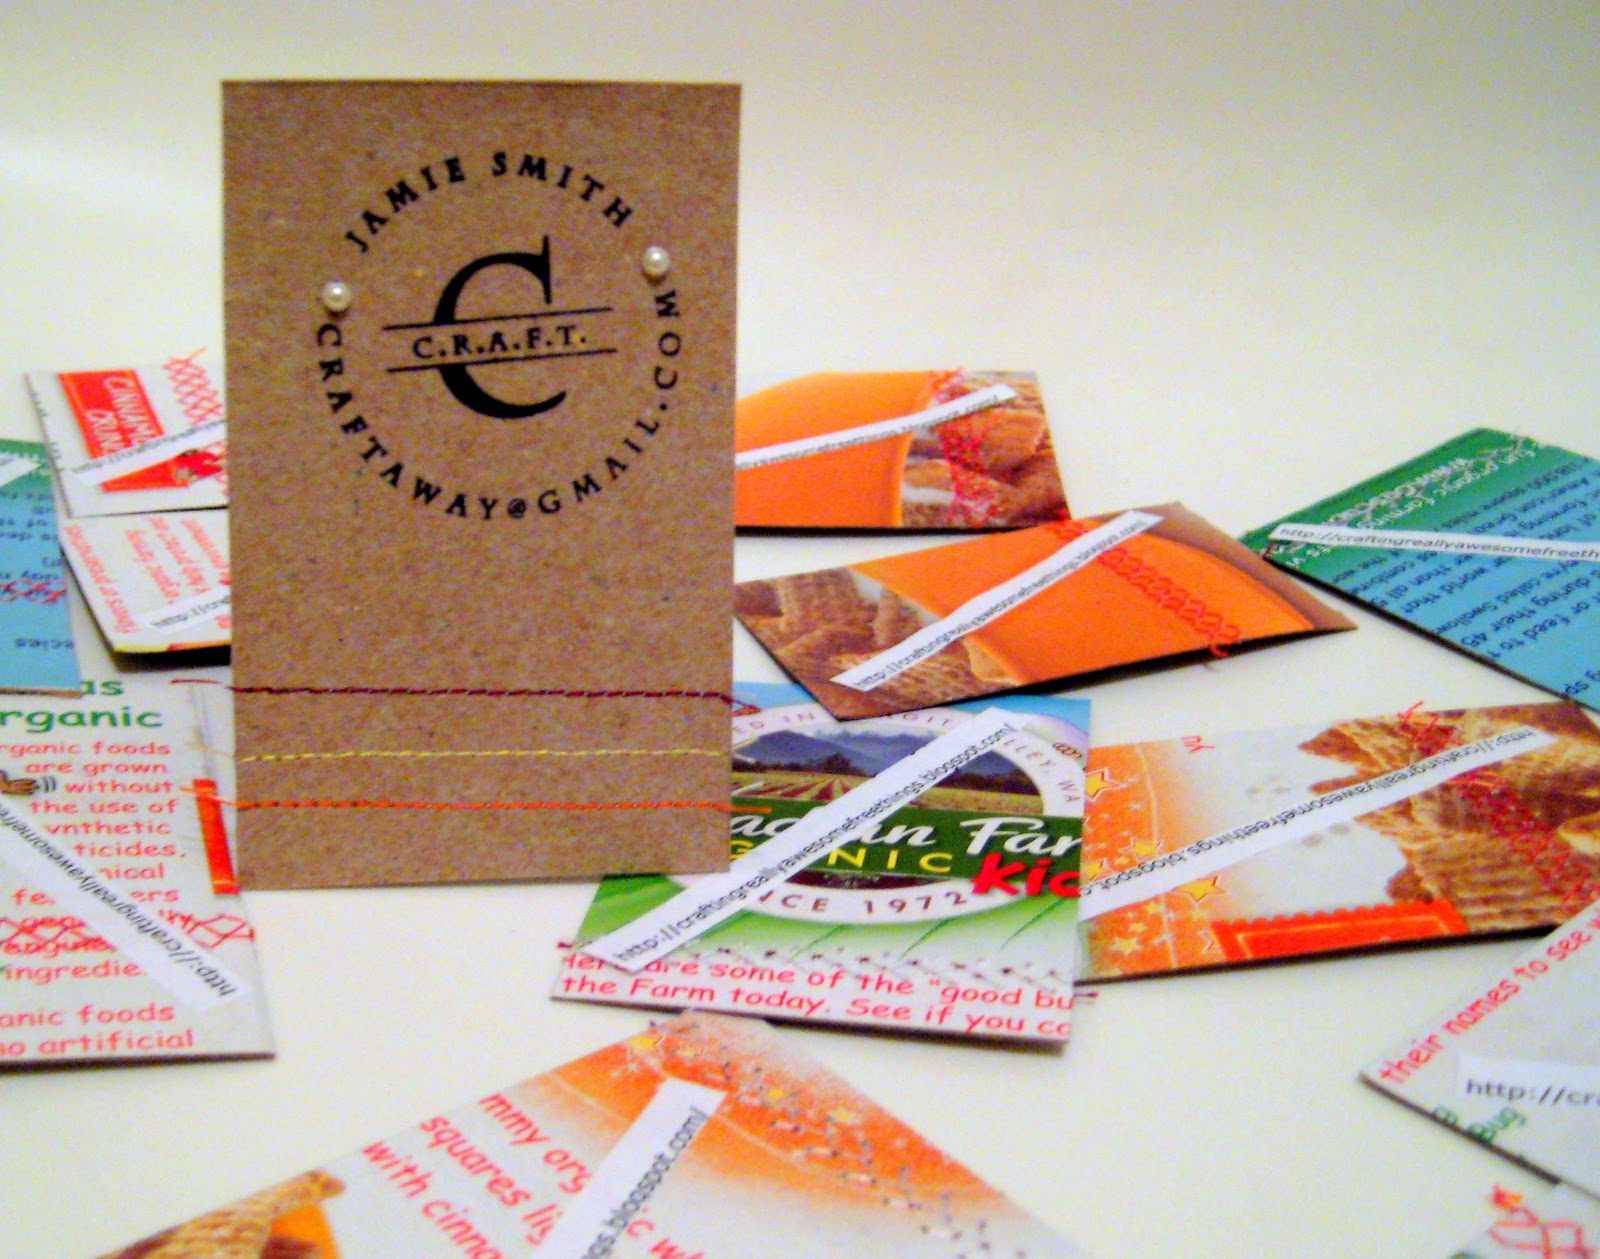 C.R.A.F.T. # 67: DIY Business Cards - C.R.A.F.T.